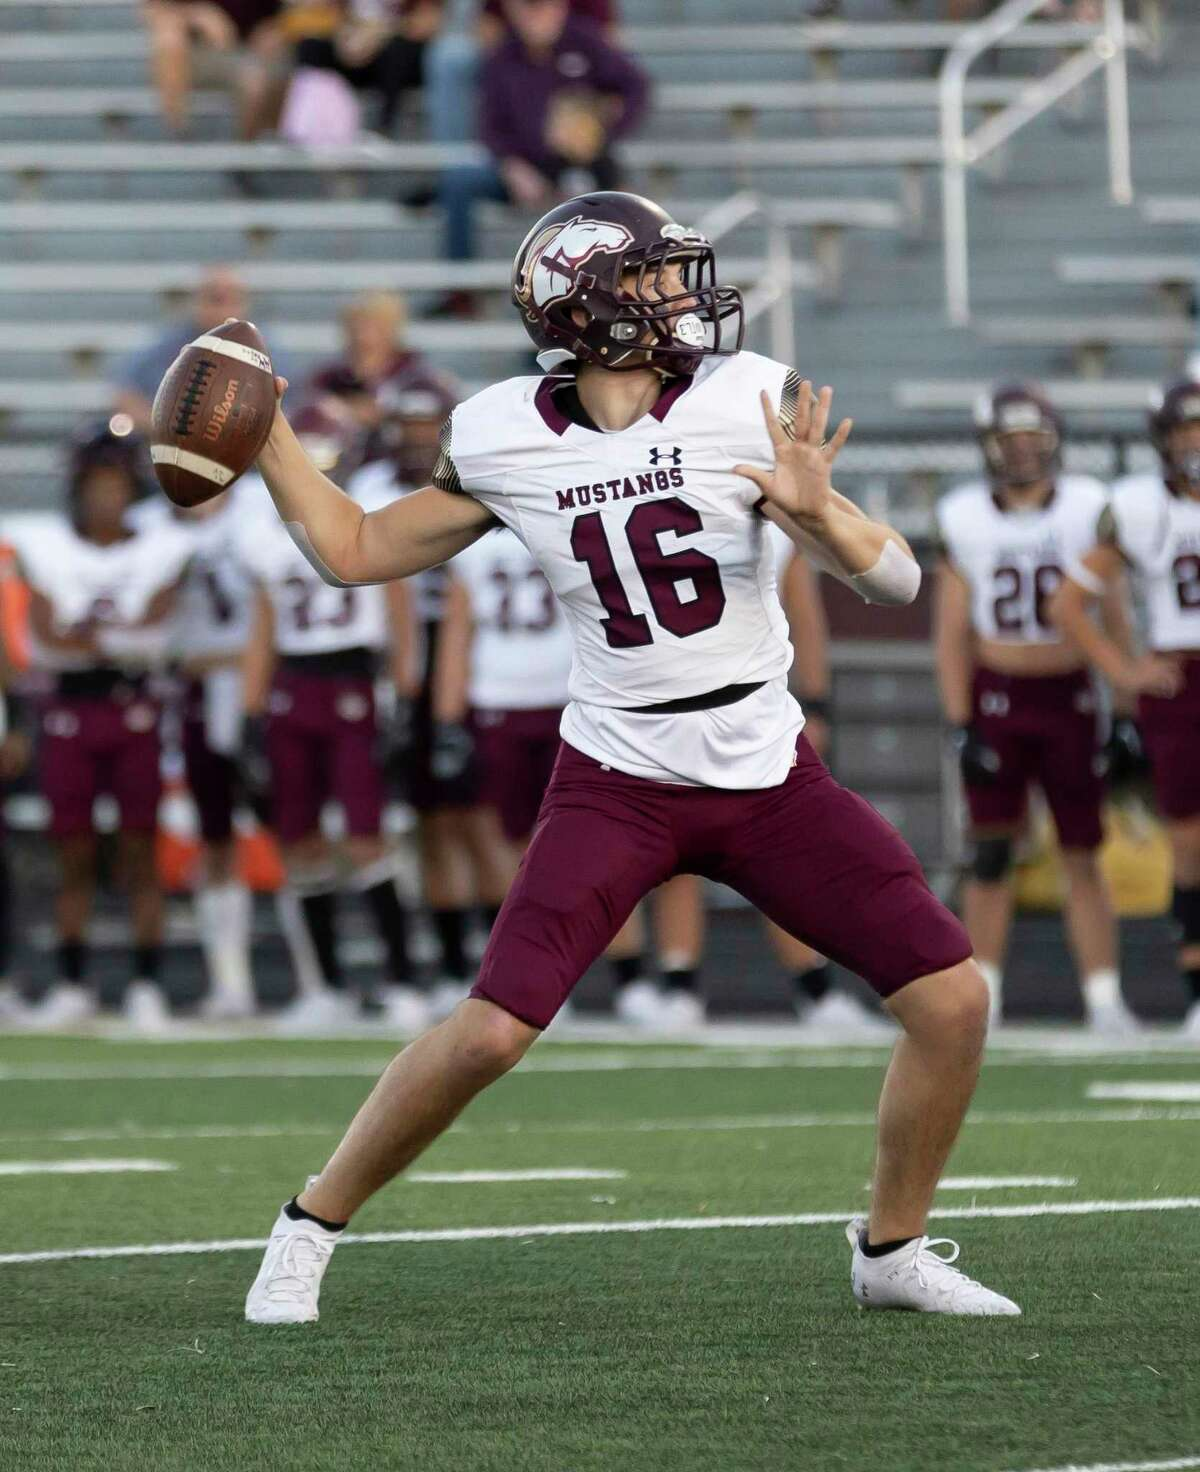 Magnolia West quarterback Ryan Ojeda (16) throws during the first quarter of a District 8-5A (Div. I) football game against Caney Creek at Buddy Moorhead Stadium, Friday, Sept. 24, 2021, in Conroe.